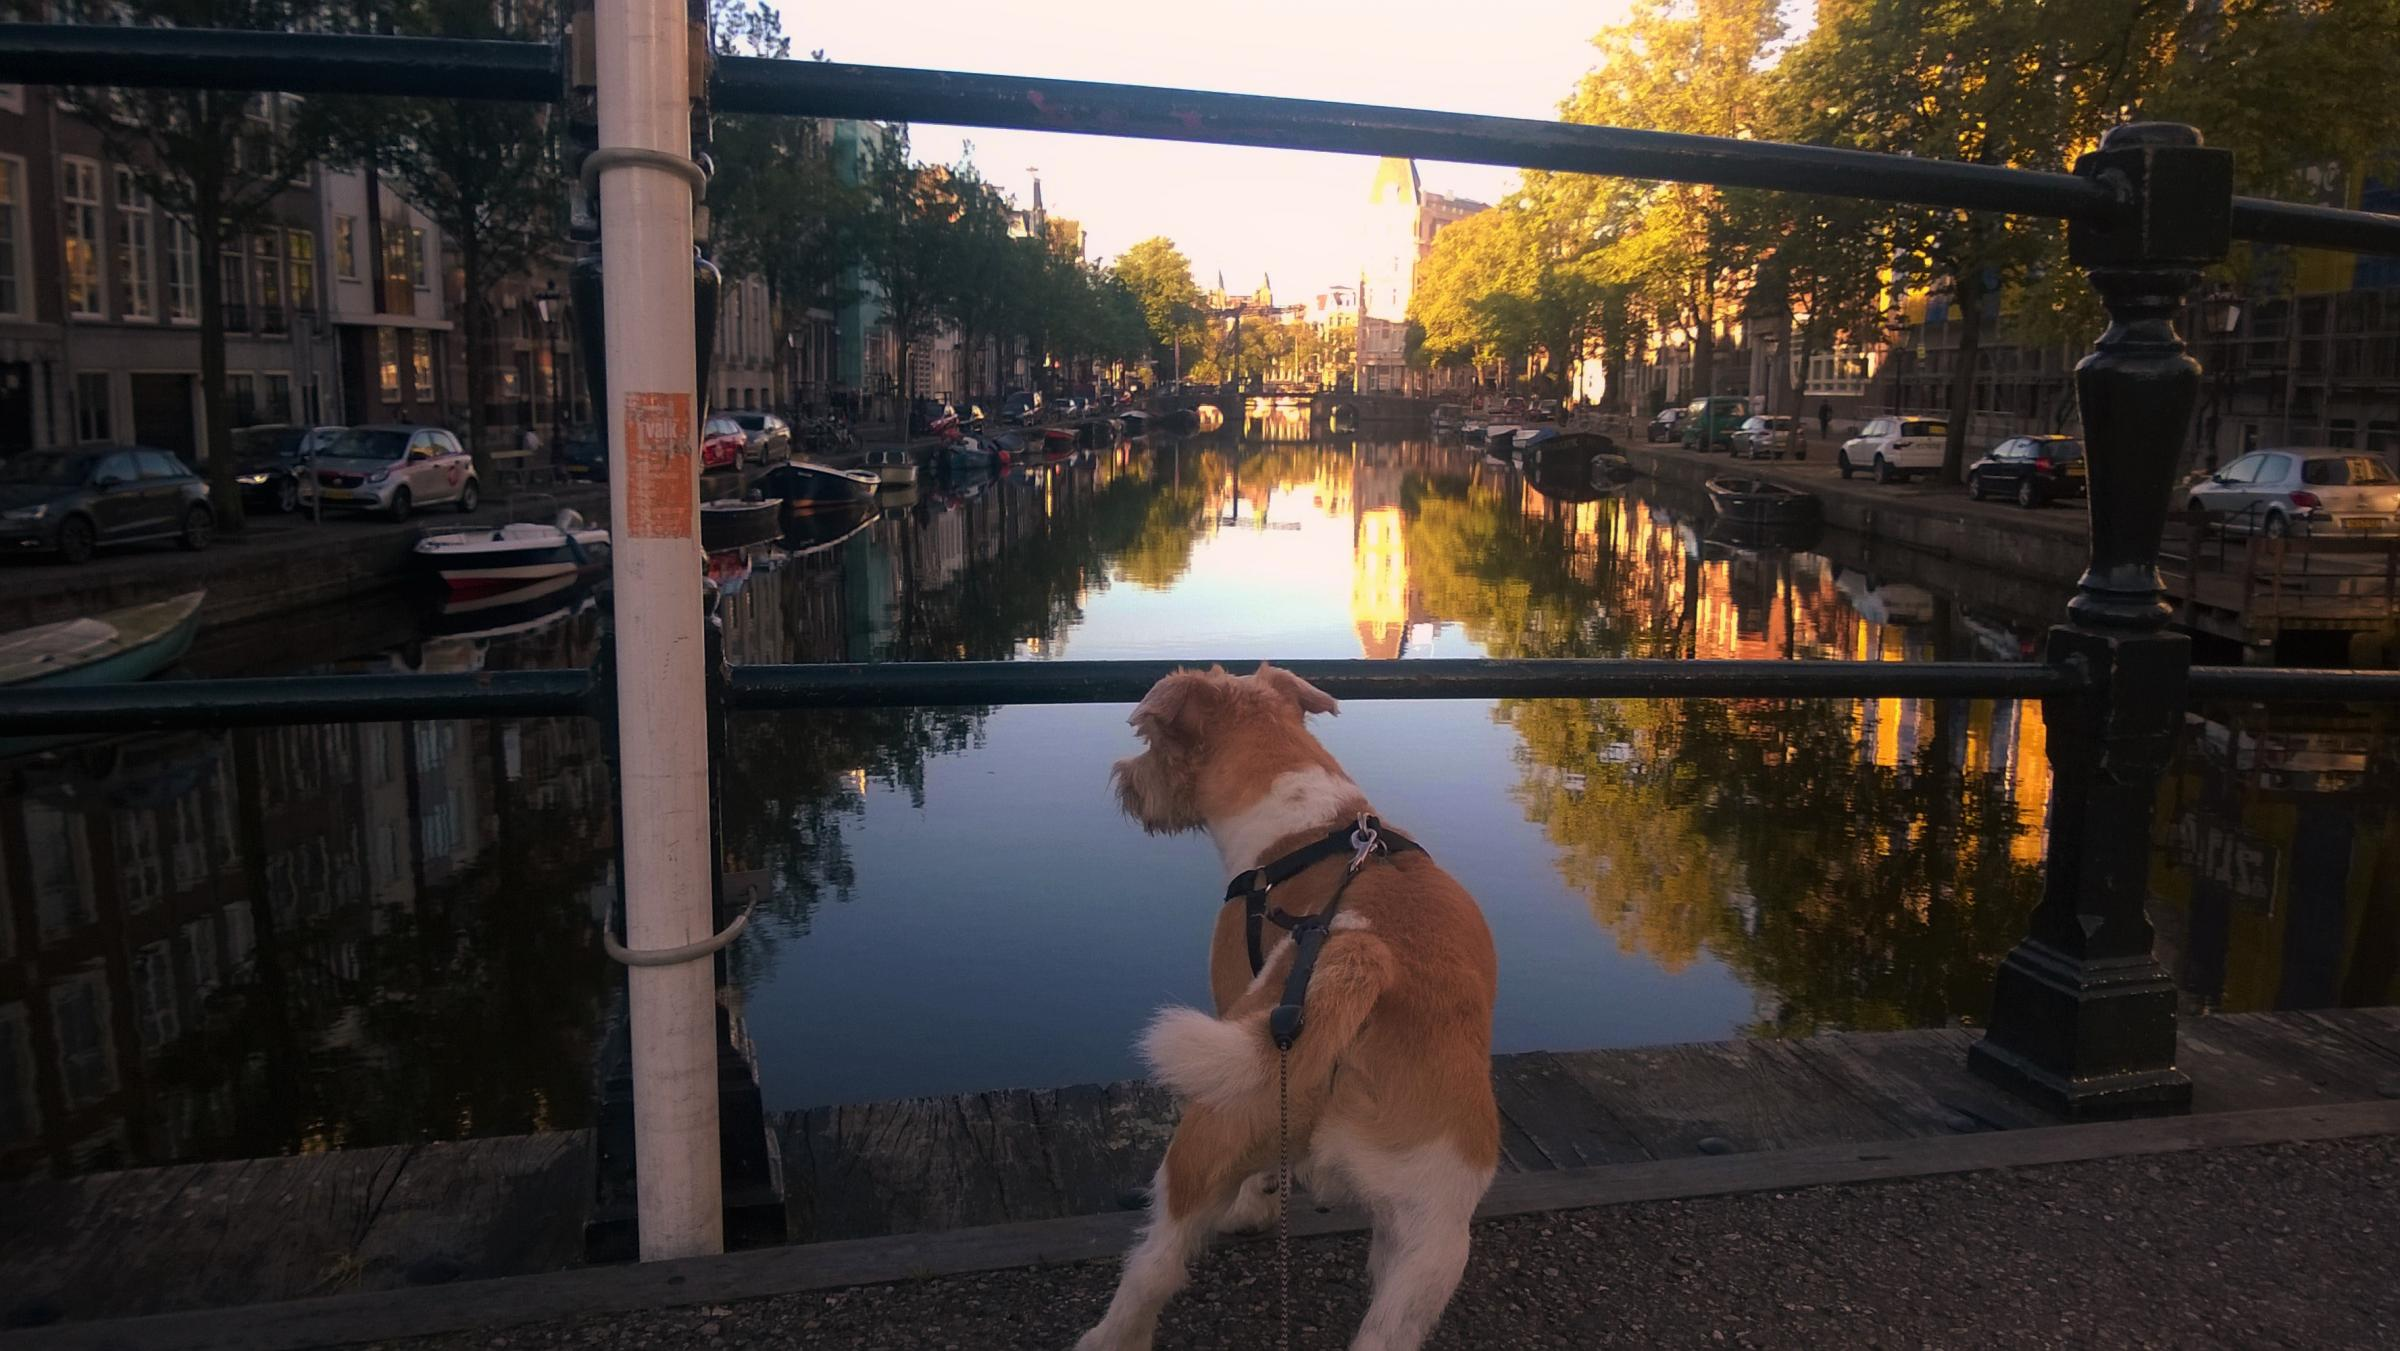 Falco enjoying the canal view in Amsterdam. Pictures:Paul Wojnicki